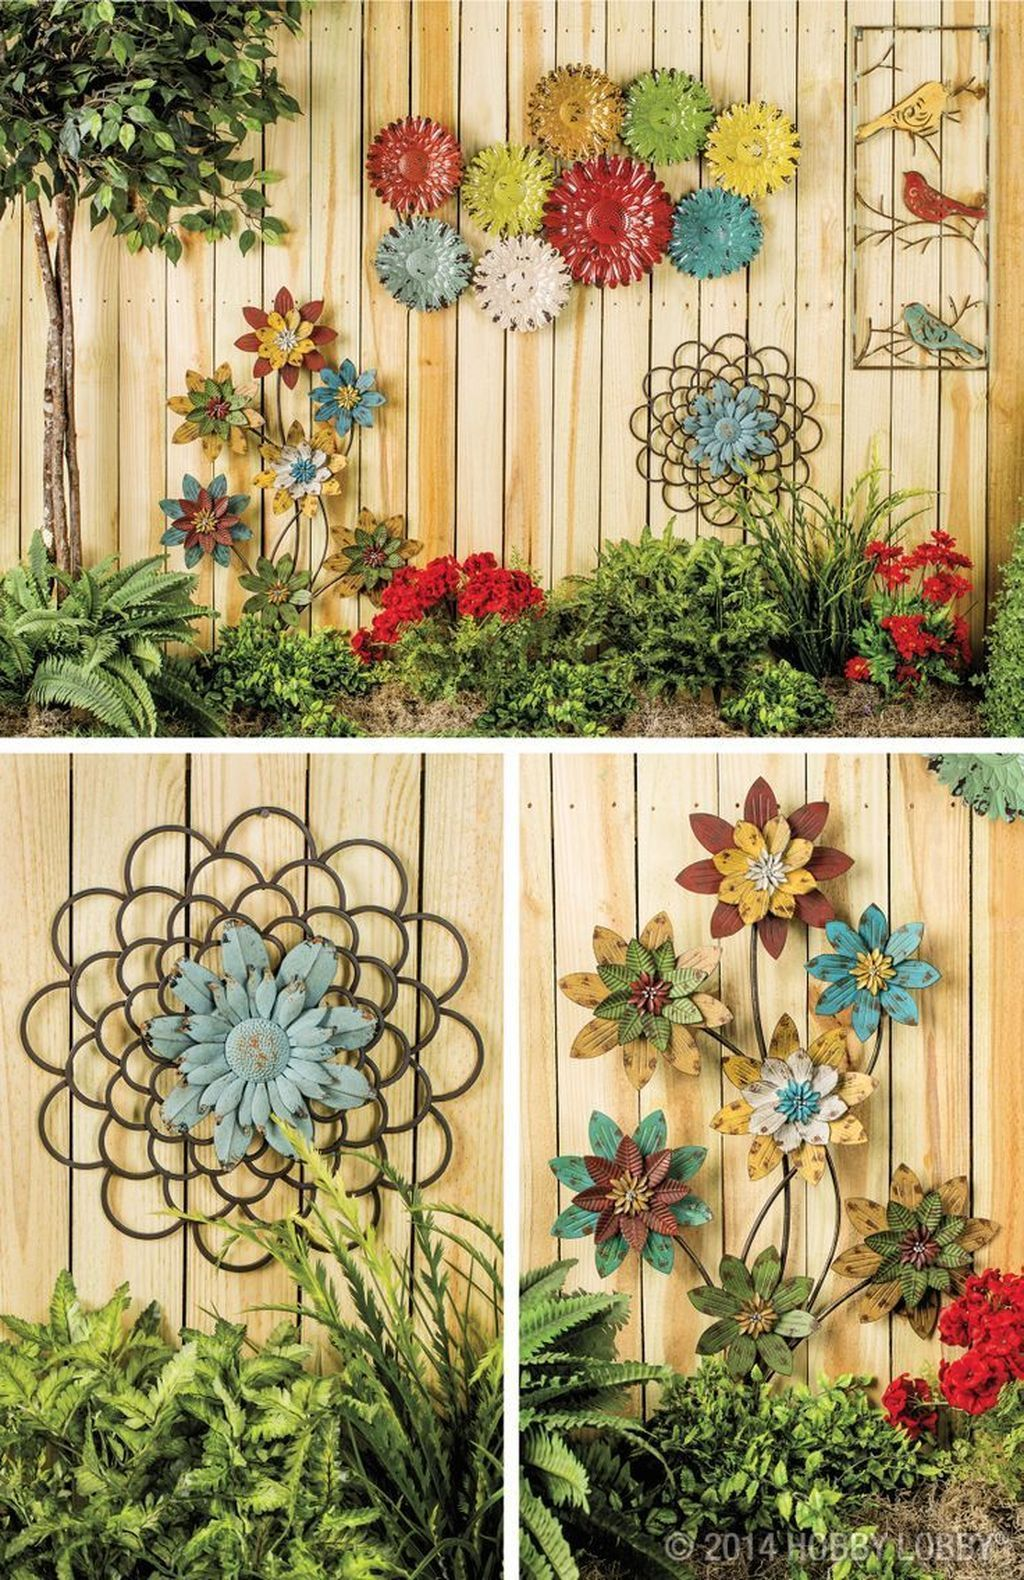 24 unique and creative design for decorating your fence